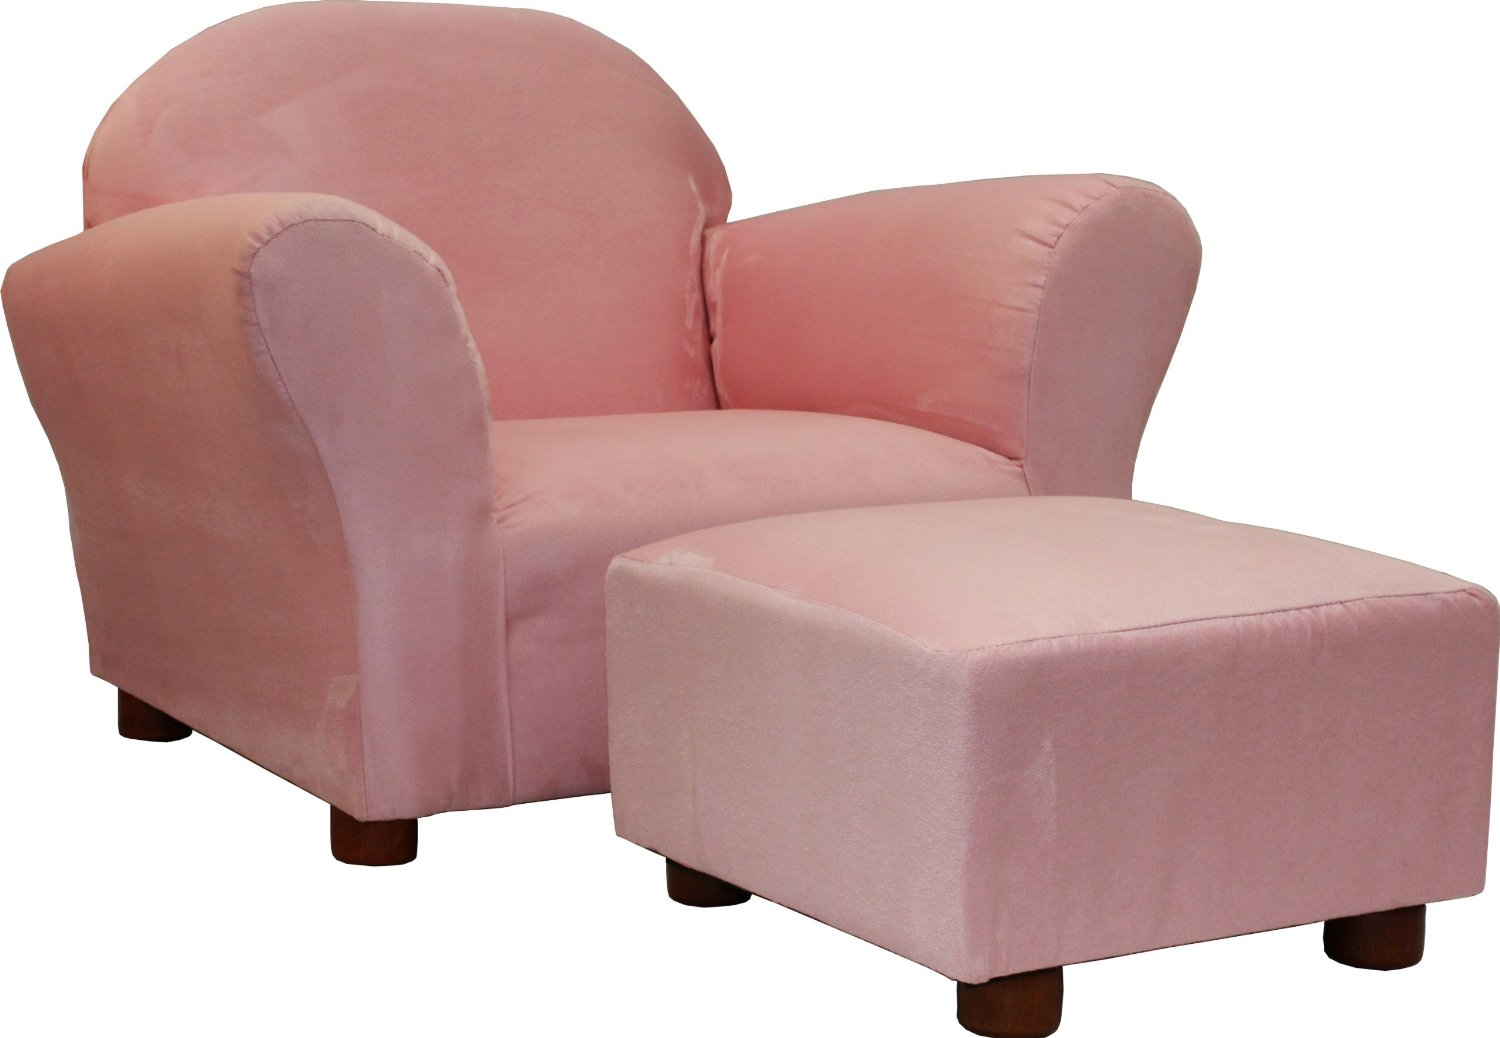 Forgiving Pink   Pink Upholstered Arm Chairs For Girls With Matching Ottoman